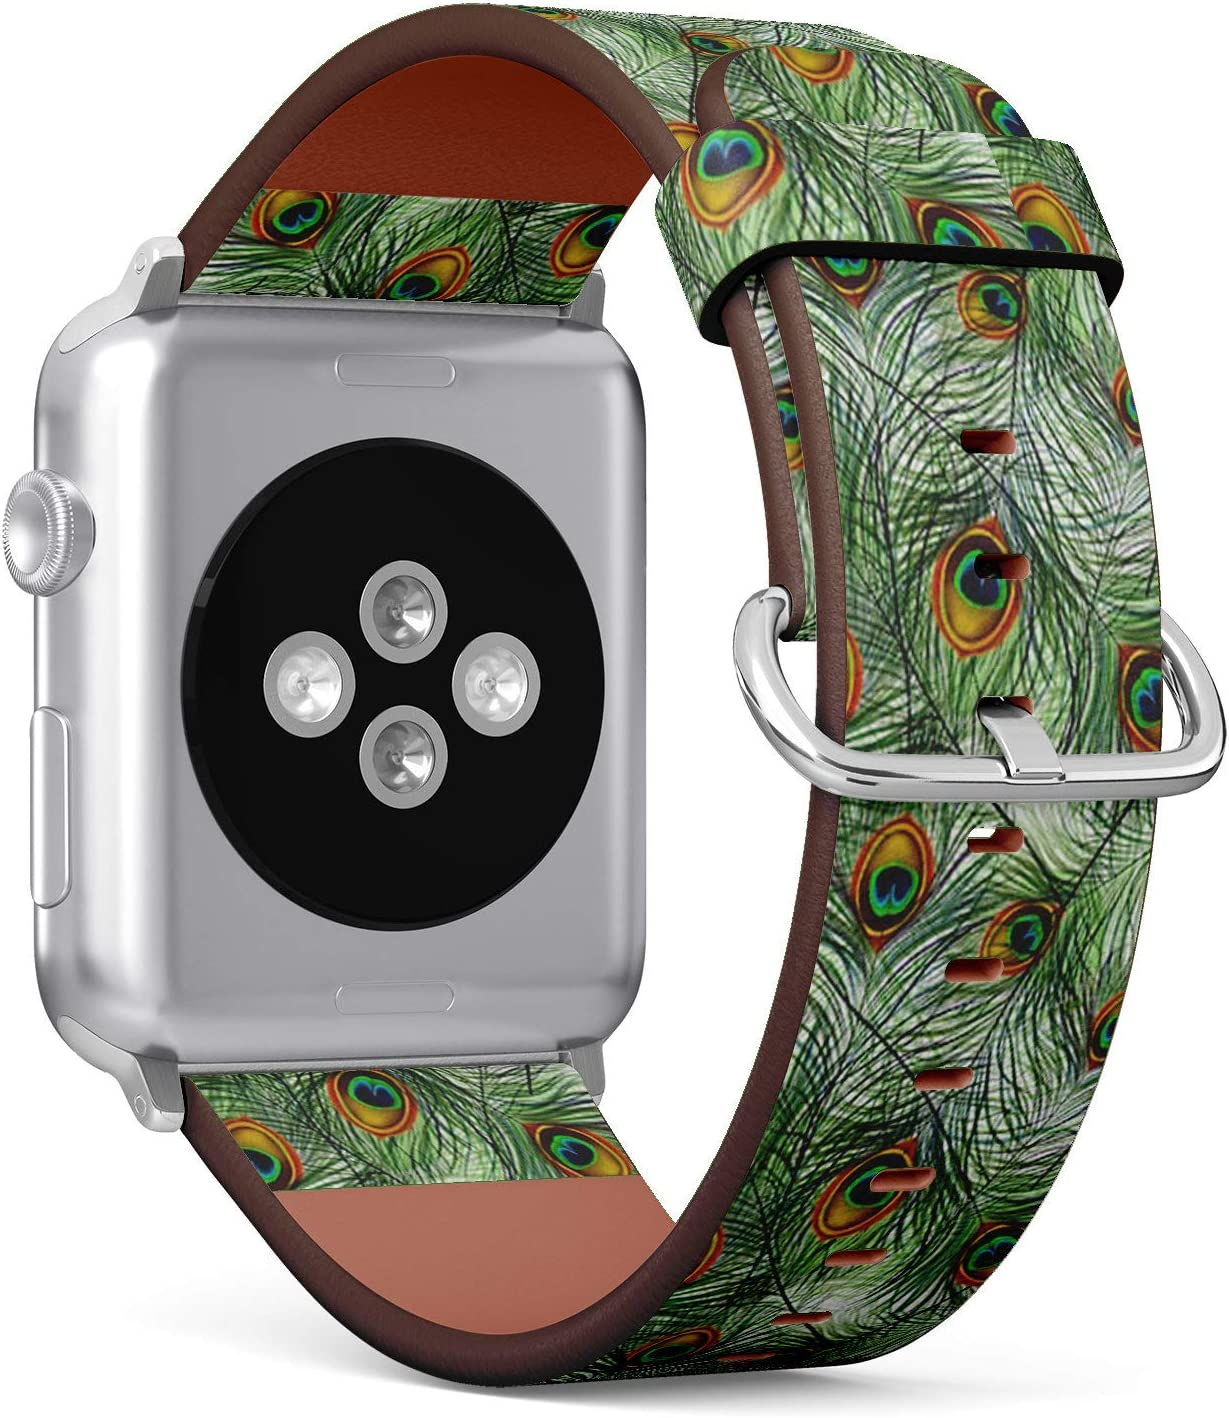 Compatible with Apple Watch 38mm & 40mm (Series 5, 4, 3, 2, 1) Leather Watch Wrist Band Strap Bracelet with Stainless Steel Clasp and Adapters (Beautiful Peacock)